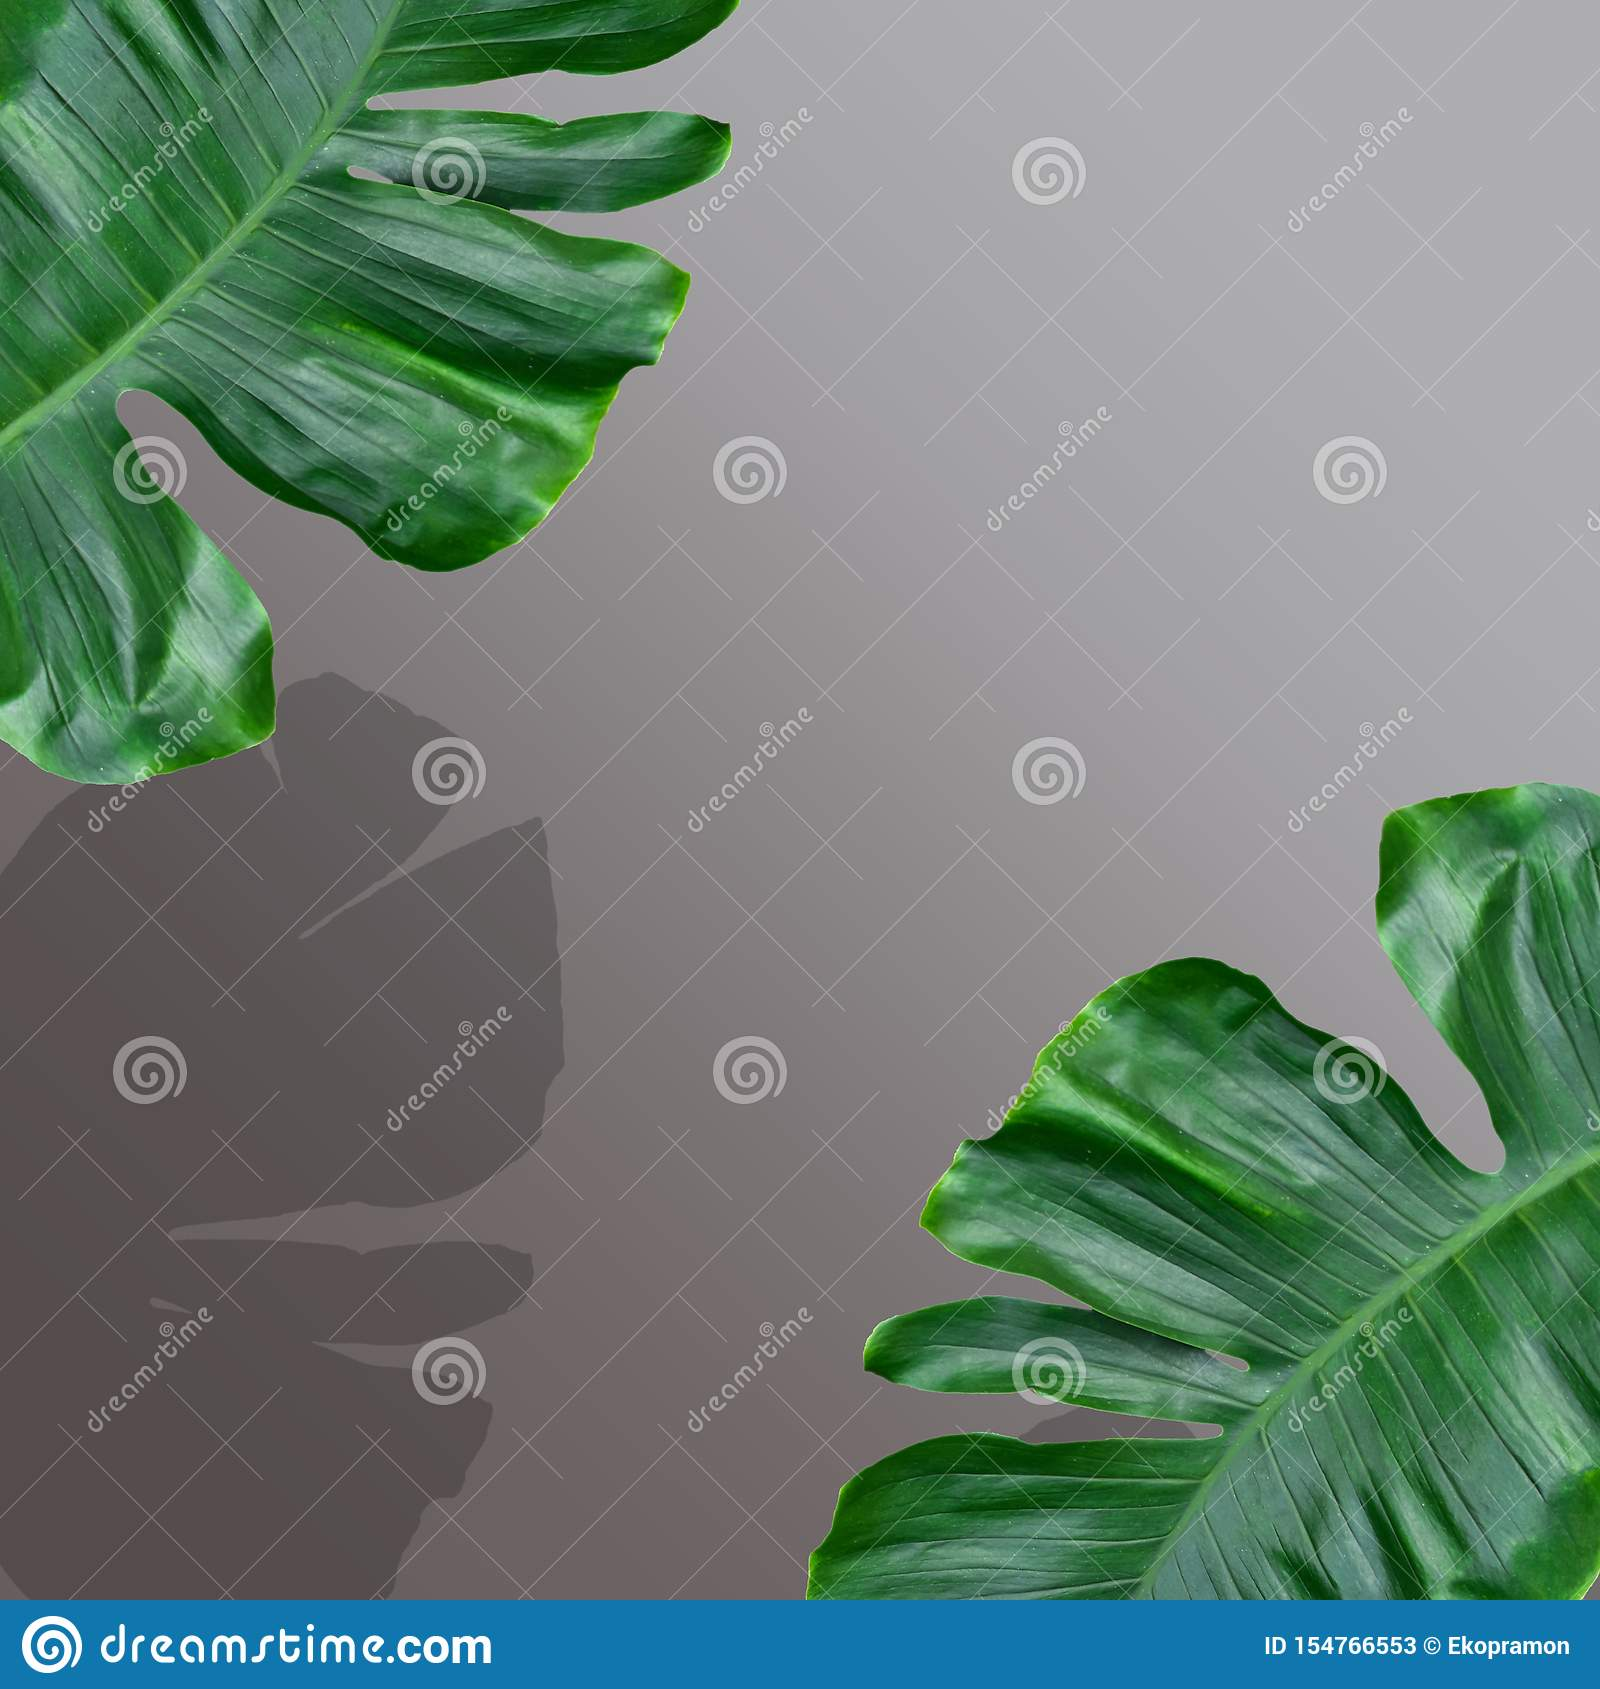 Creative Layout Made Of Monstera Leaves Flat Design Stock Image Image Of Flower Decoration 154766553 Floral seamless pattern foliage seamless pattern design with pastel color tropical leaves pattern background. dreamstime com